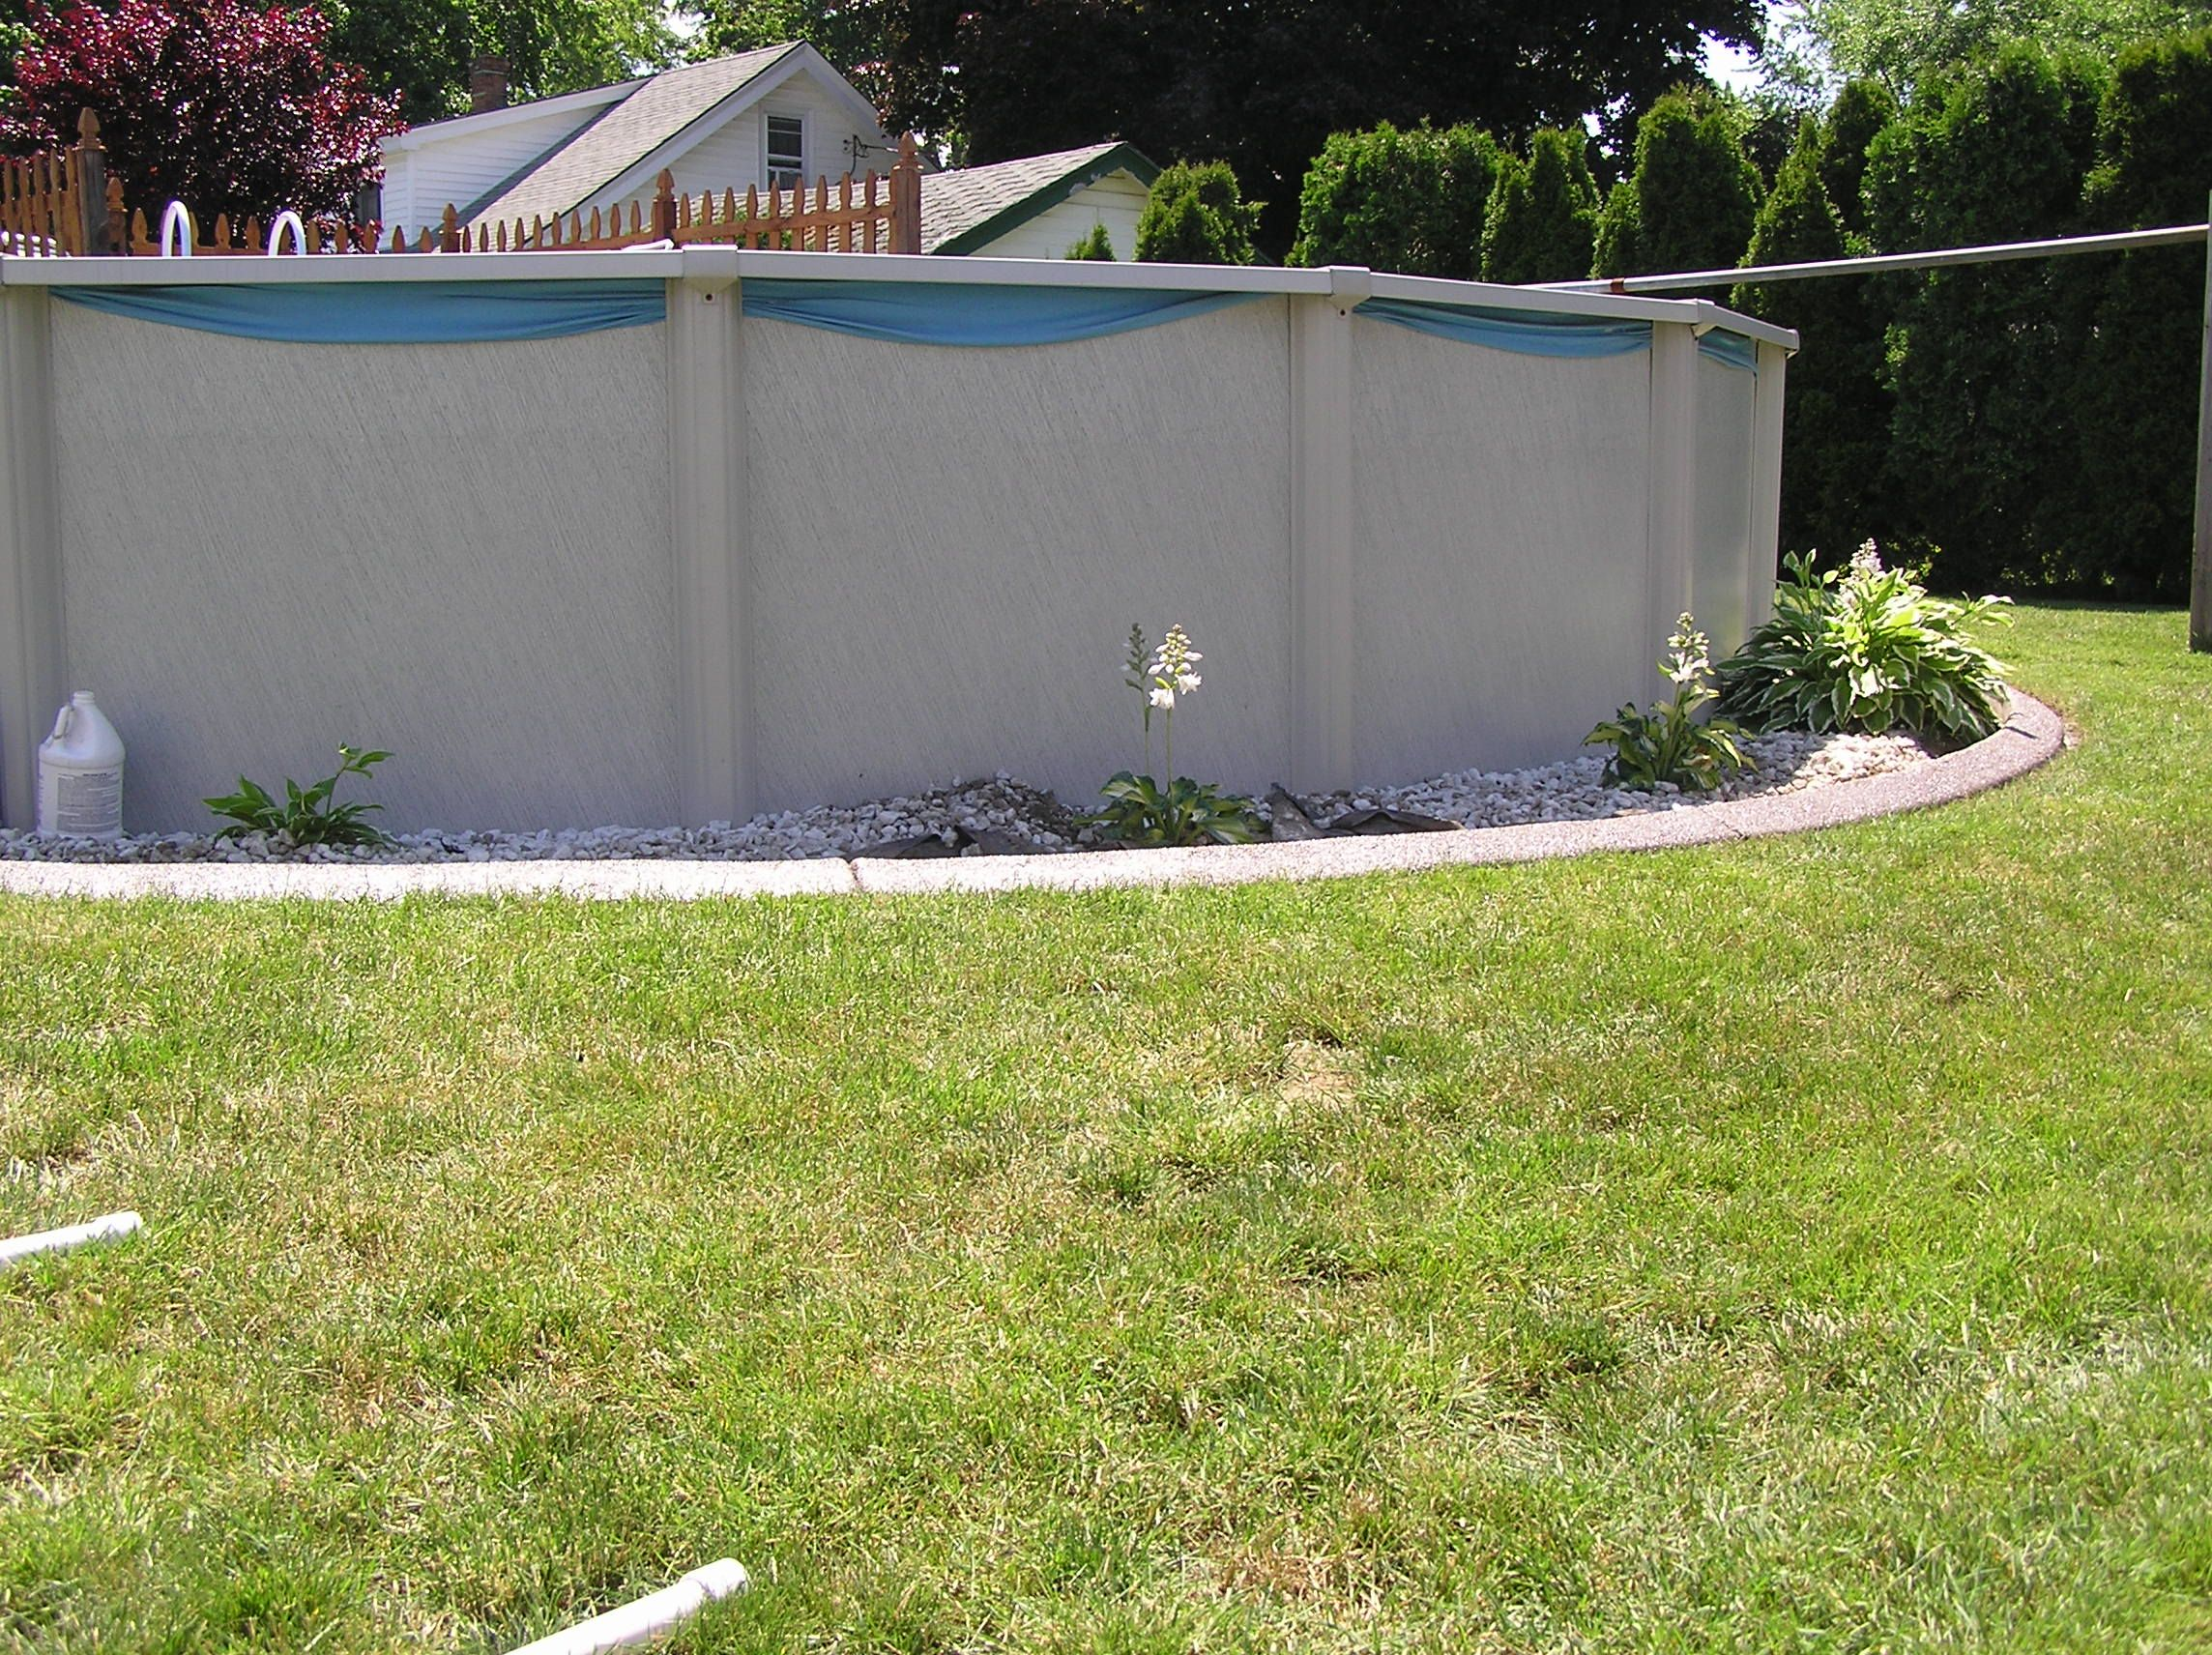 Above Ground Pool Landscaping Ideas above ground pools robert b 04jpg 800600 White Landscaping Around Above Ground Pool Simple Landscaping